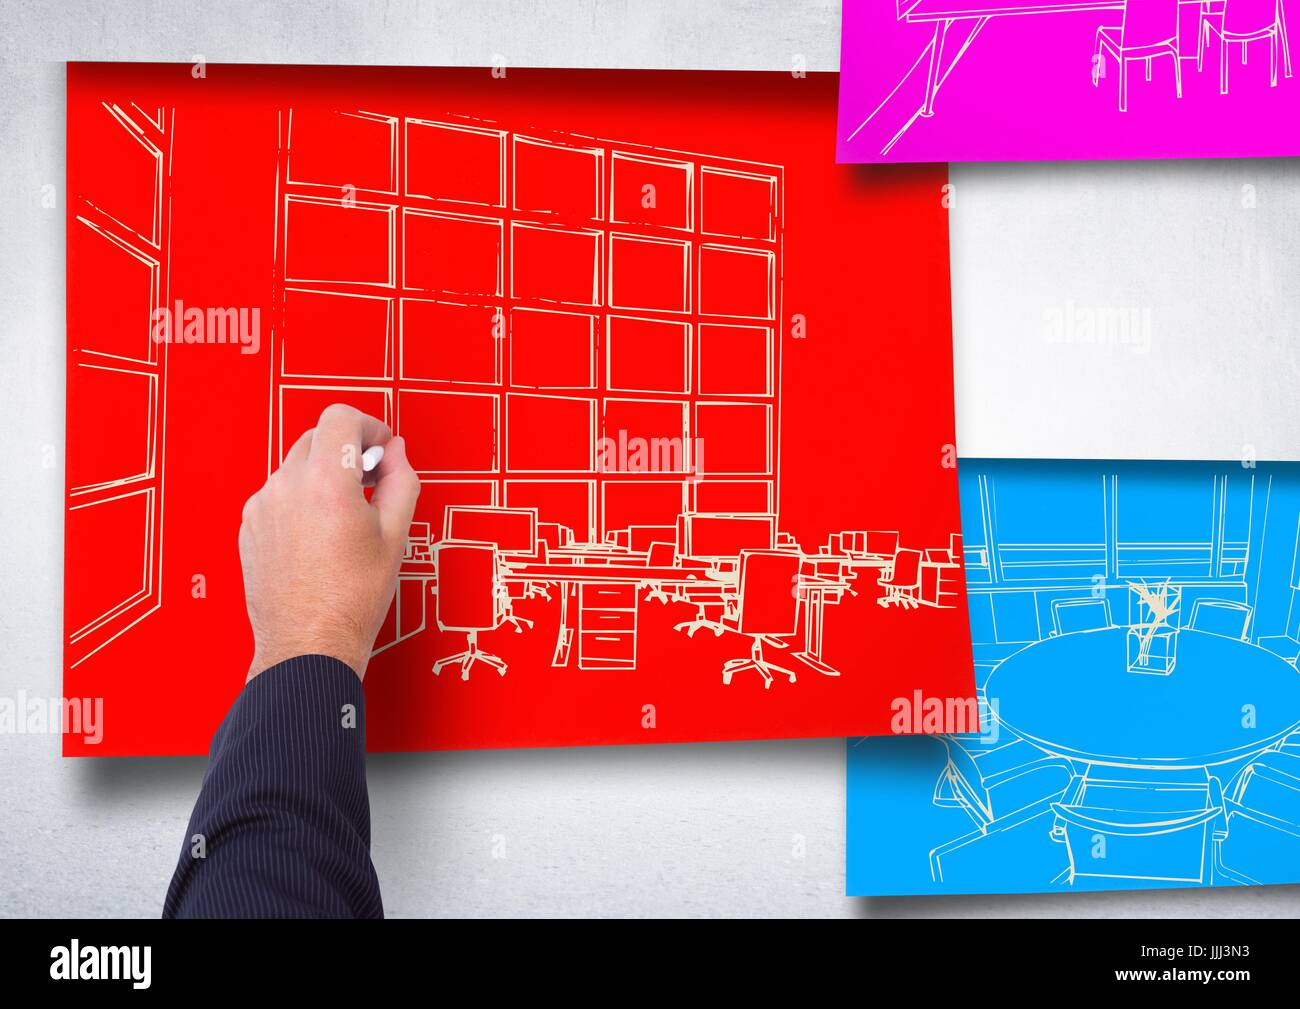 Drawing Lines In Office : D hand drawing office white lines on red paper stick the wall